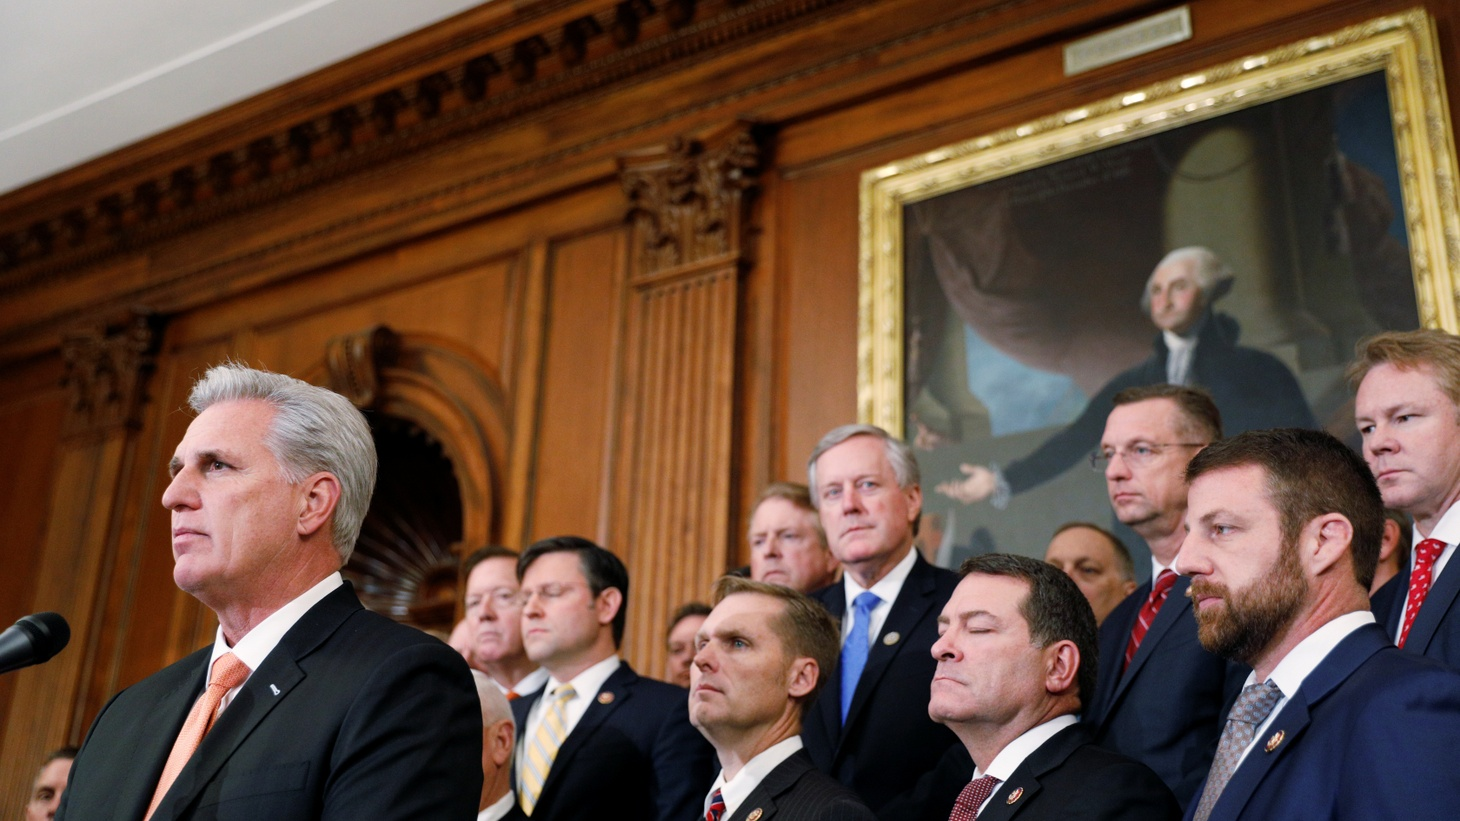 House Minority Leader Kevin McCarthy (R-CA) delivers remarks during a news conference with members of Congress following a vote in favor of impeachment, in Washington, U.S., October 31, 2019.